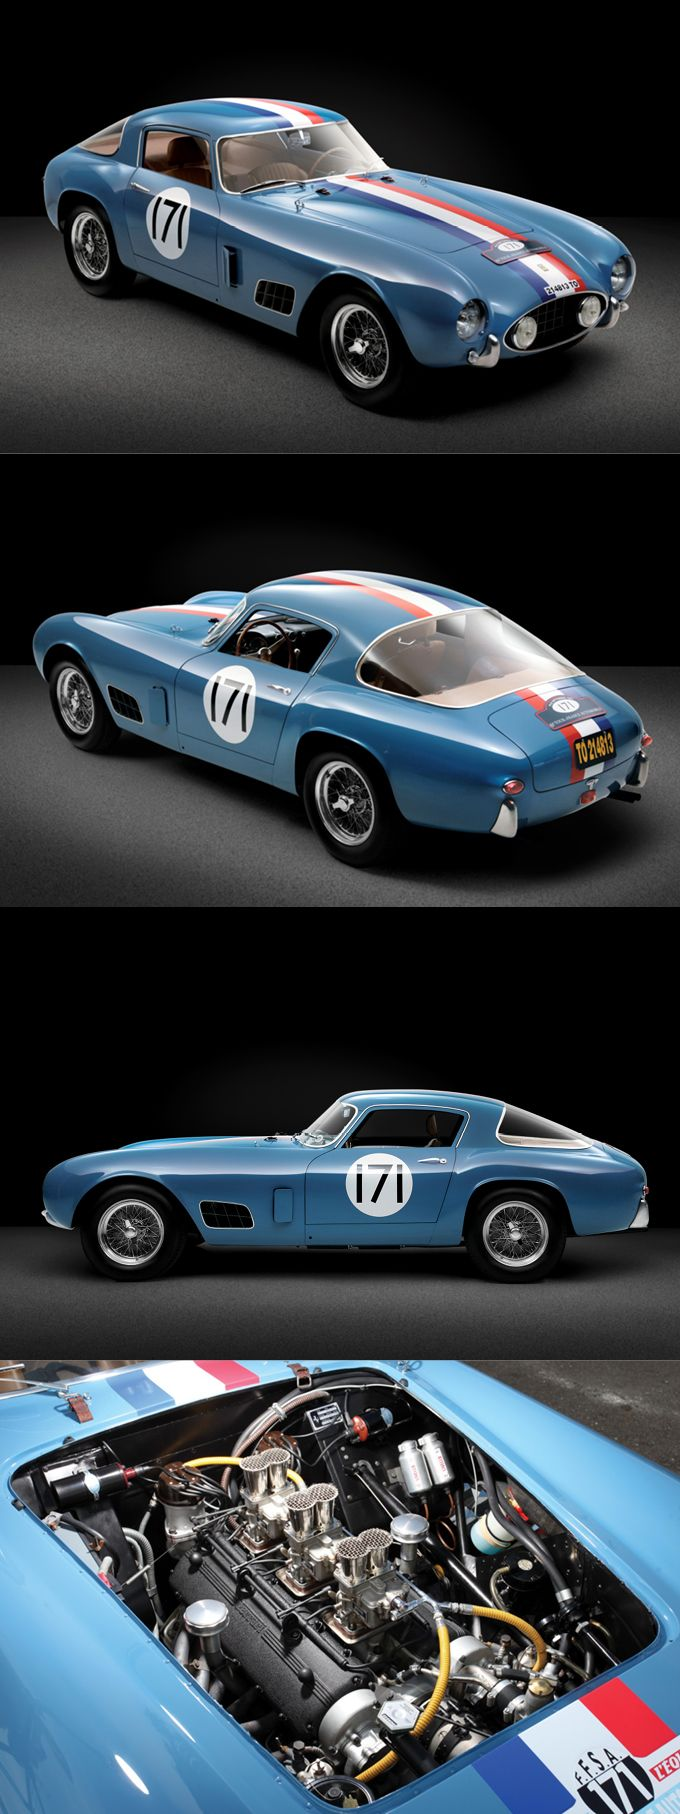 1956 Ferrari 250 GT Tour de France / TdF / Italy / blue red white / 17-285